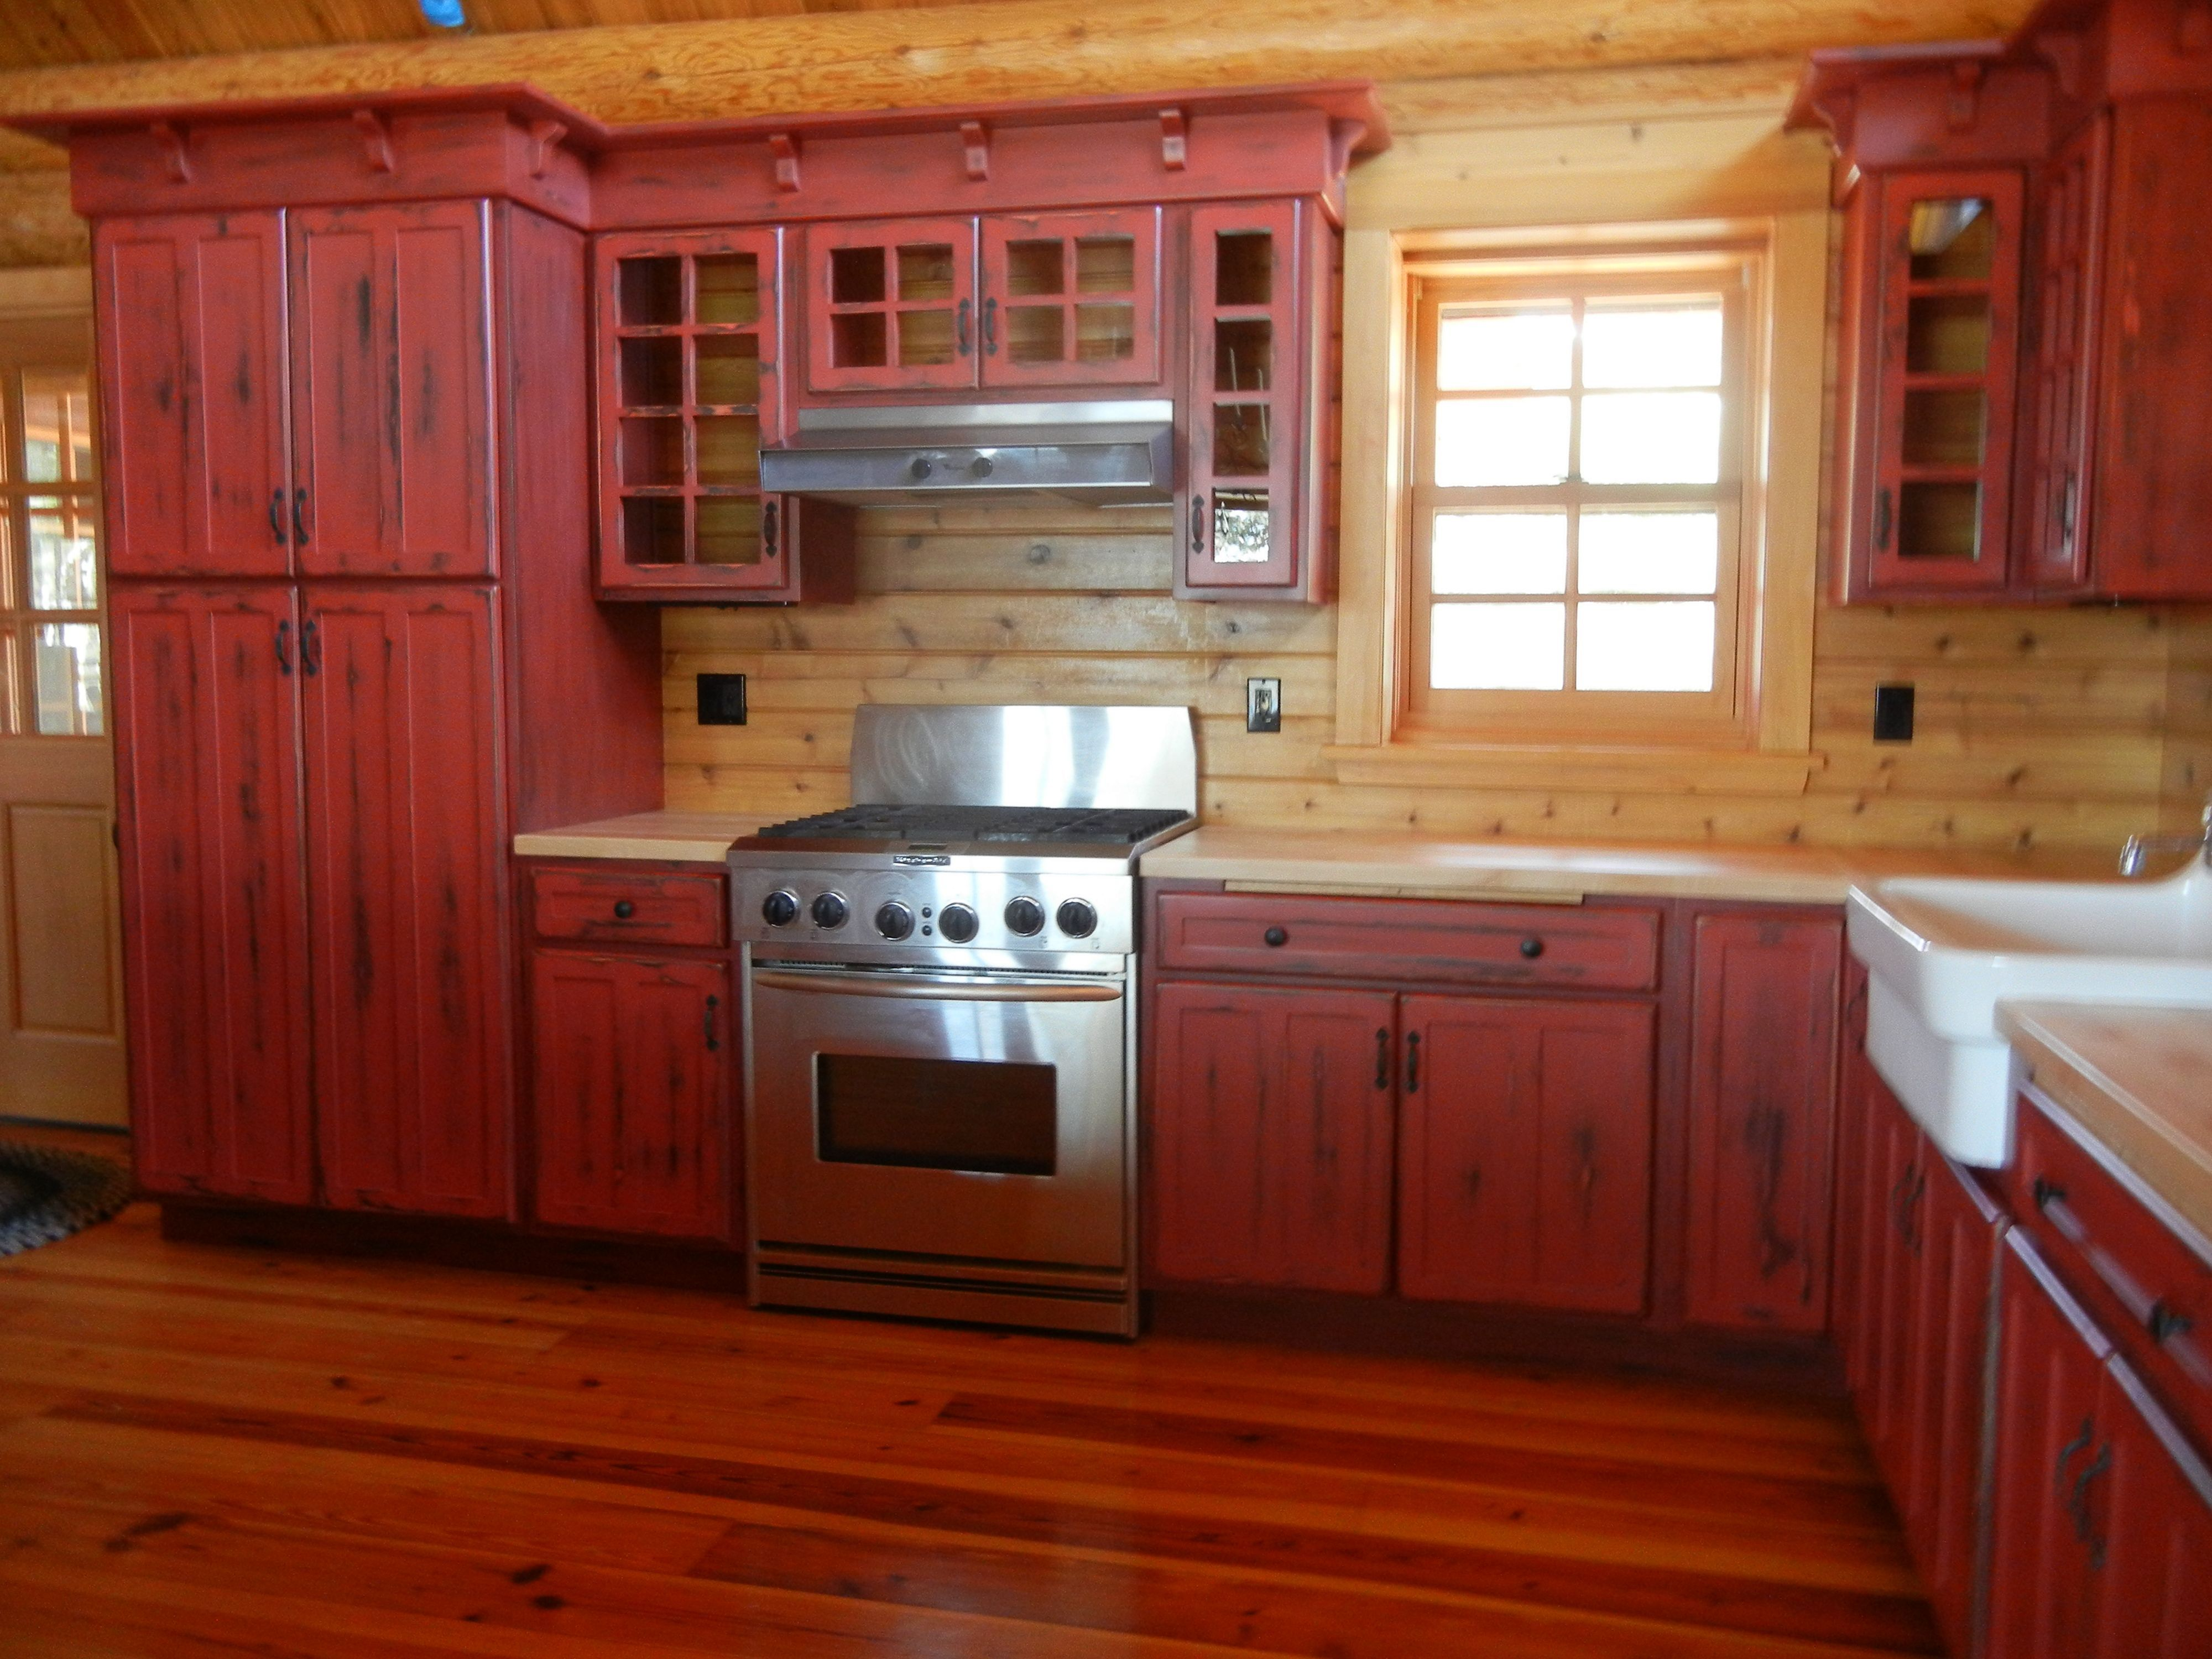 Gorgeous 20 Rustic Kitchen Design Ideas On A Budget Red Kitchen Cabinets Rustic Kitchen Cabinets Distressed Kitchen Cabinets